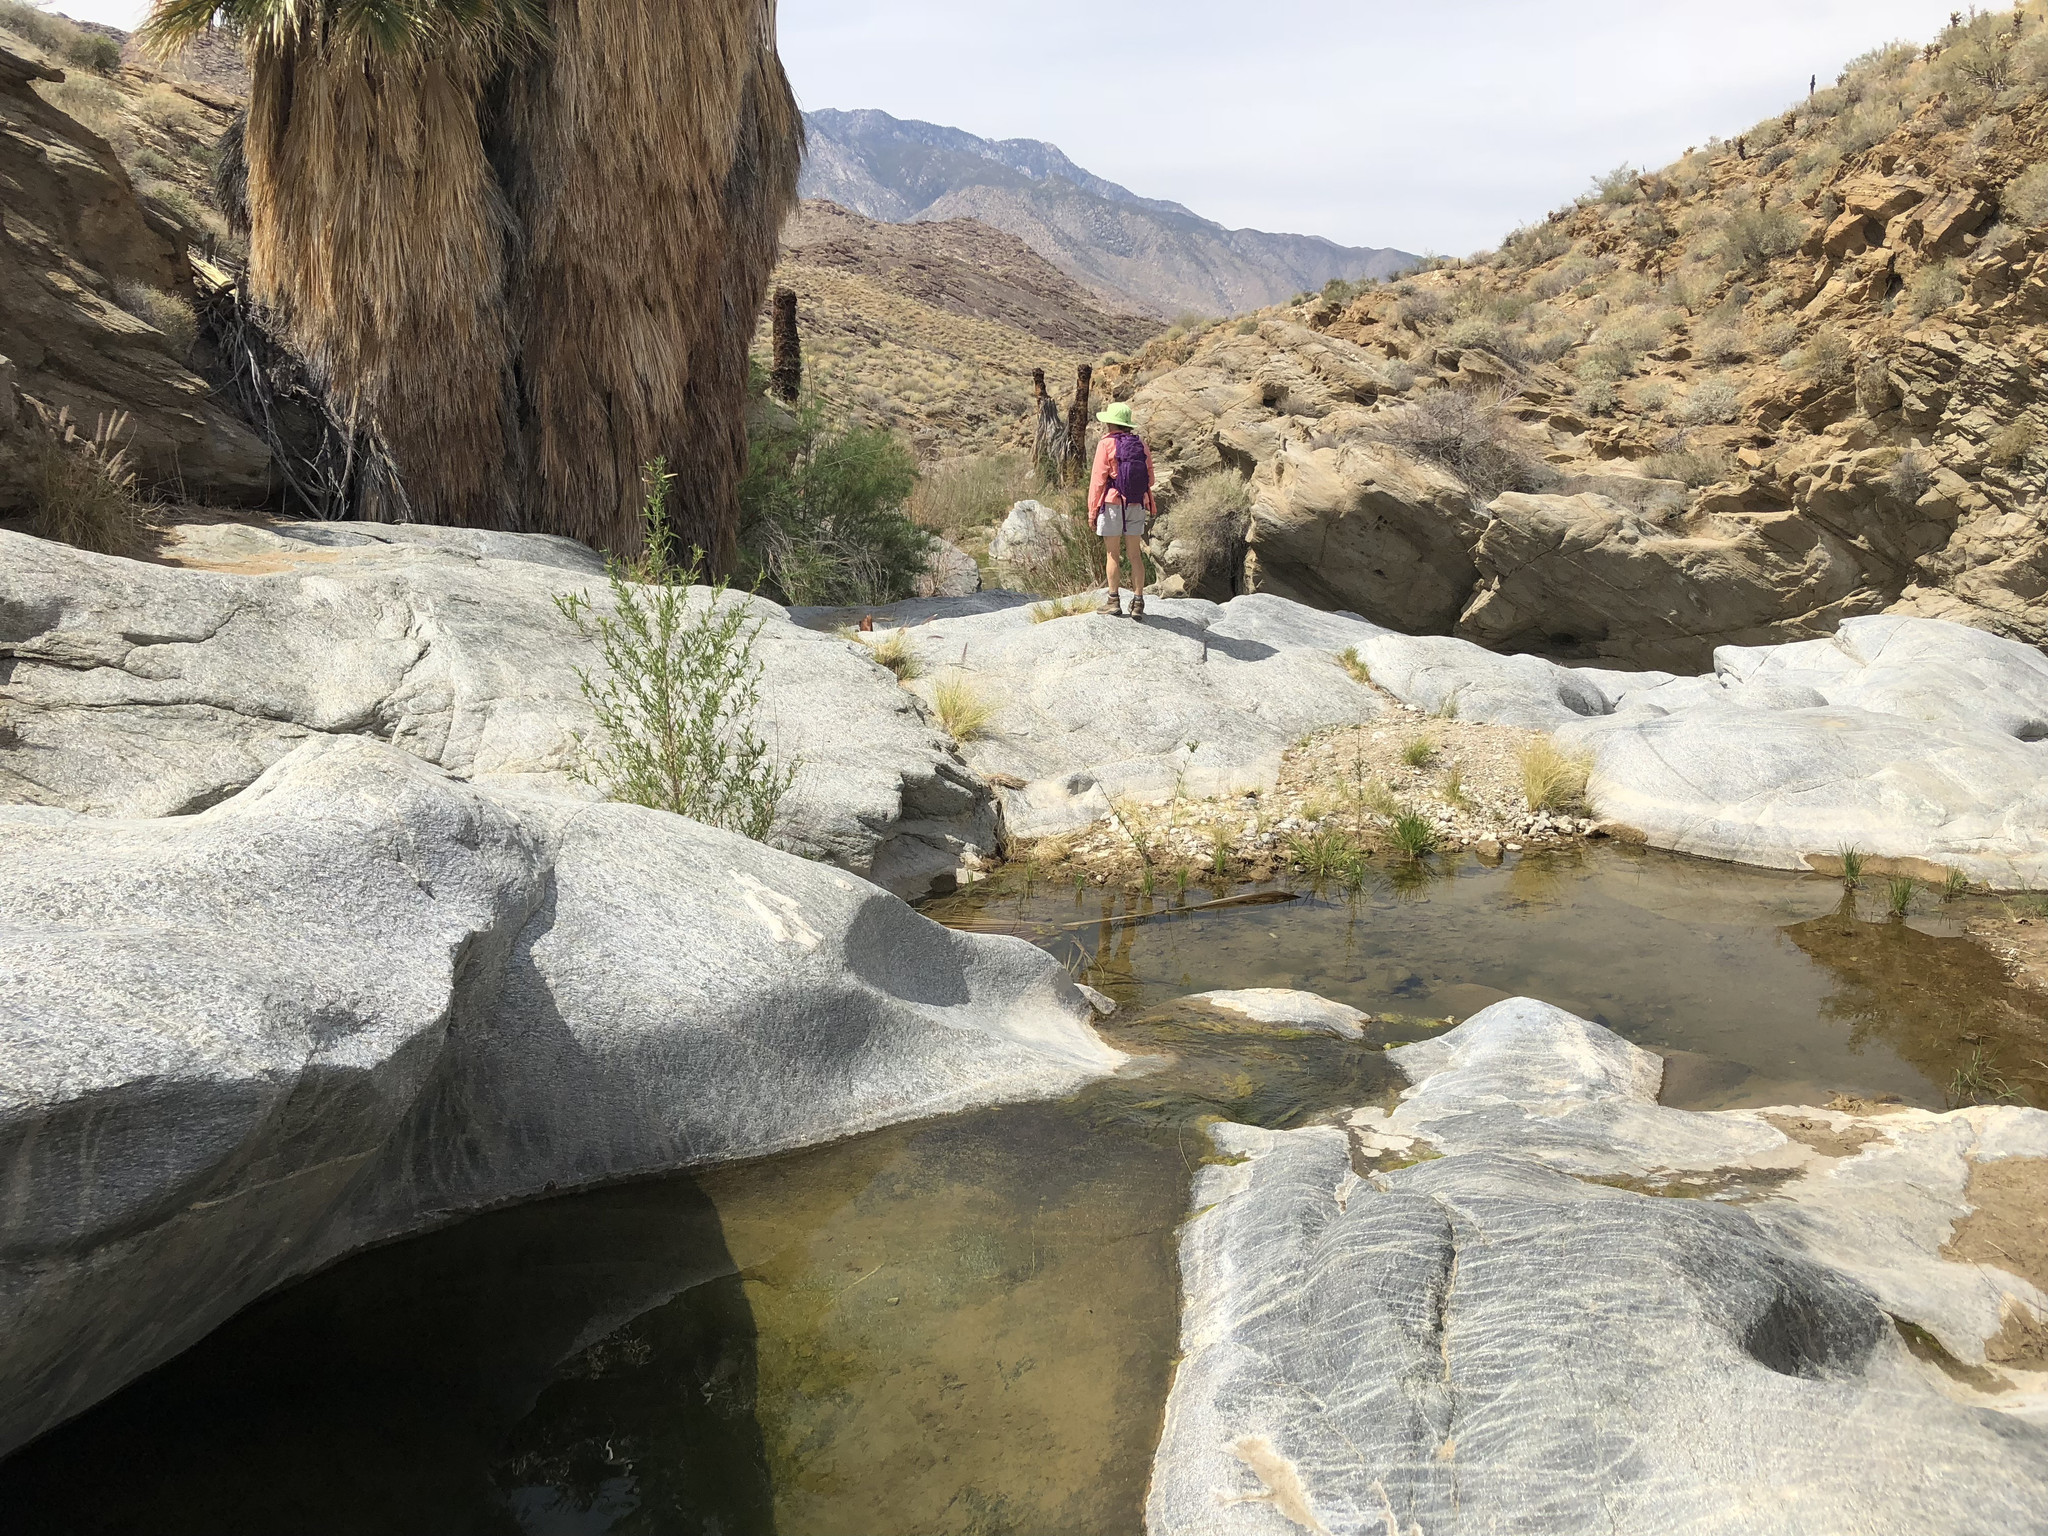 A hiker walks along granite slabs sculpted by tumbling waters on the Stone Pools Trail near Palm Spr